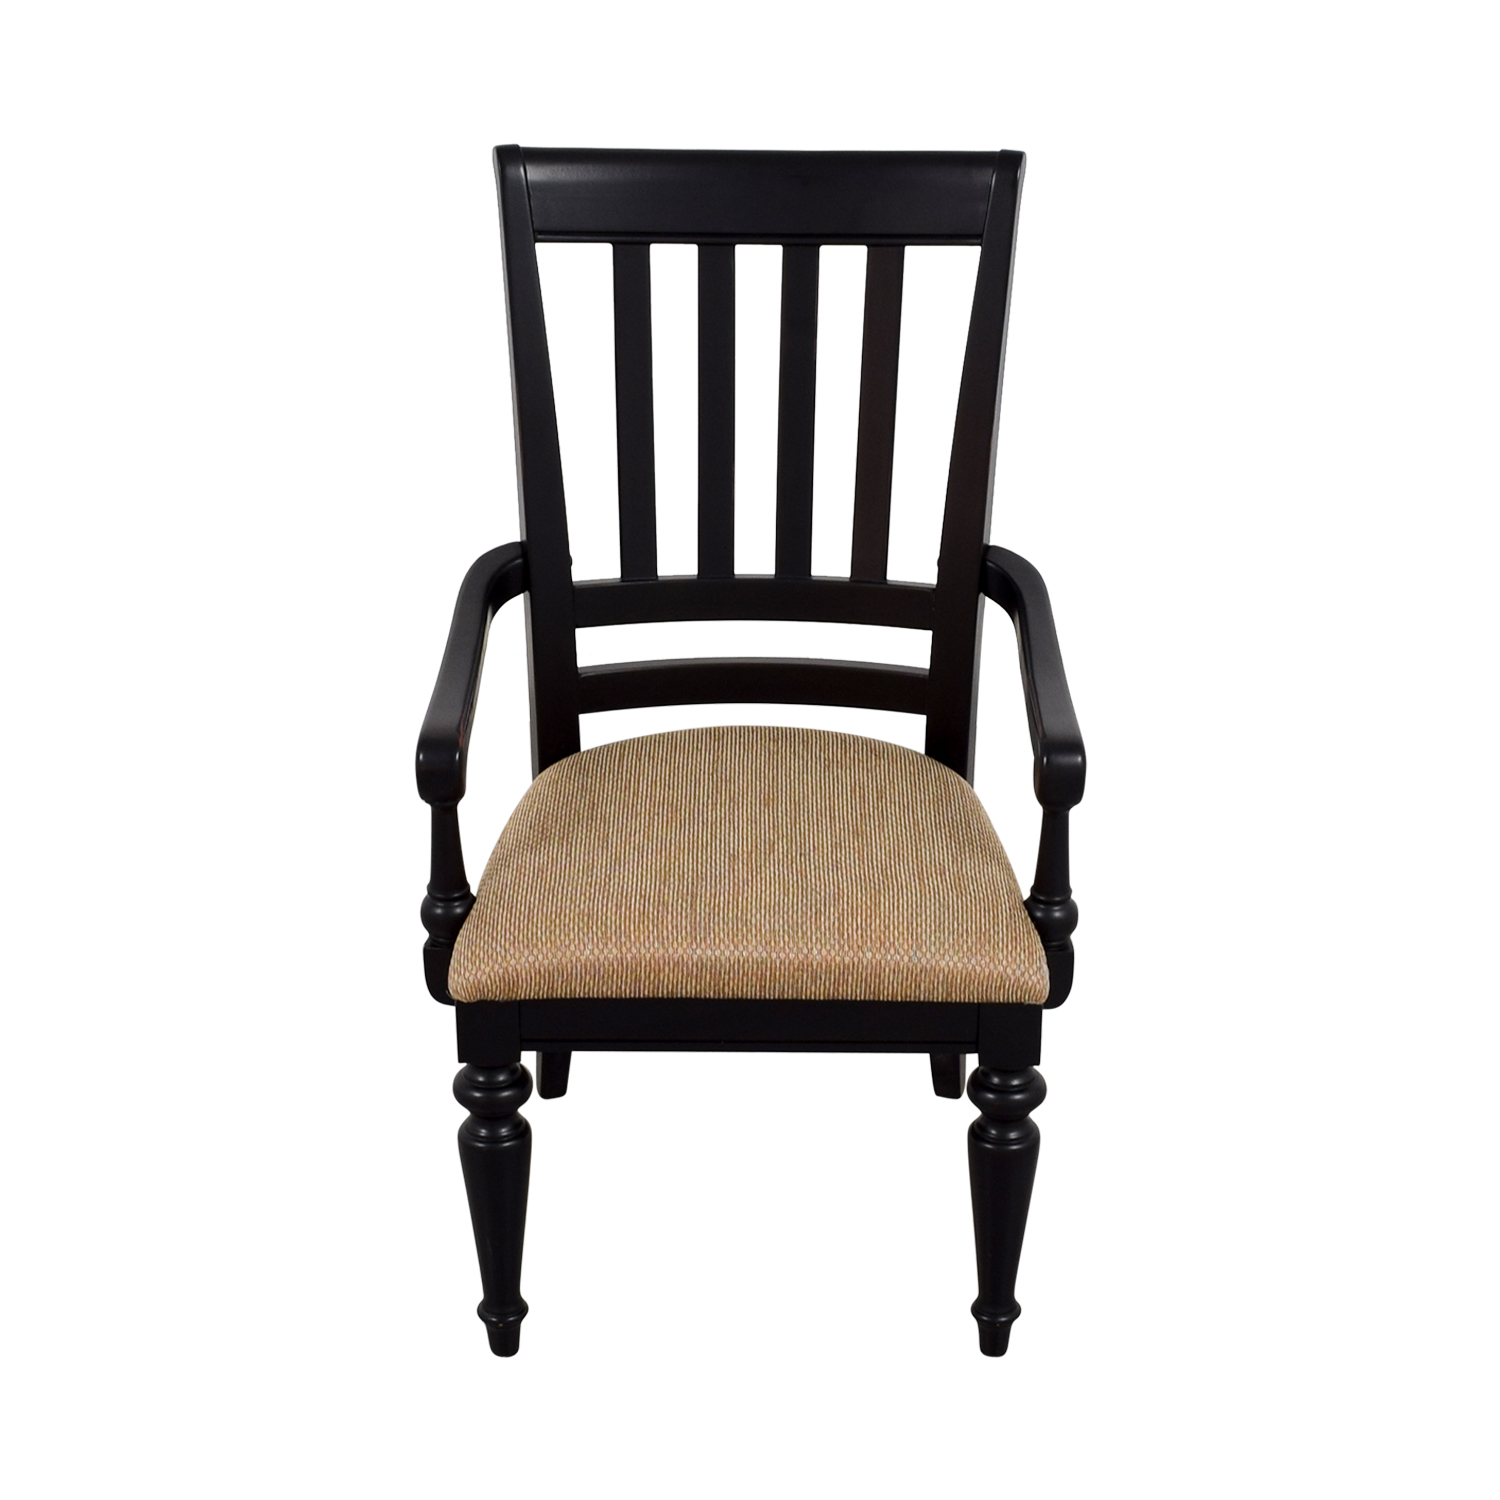 90 OFF  Black Arm Chair with Beige Upholstered Padded